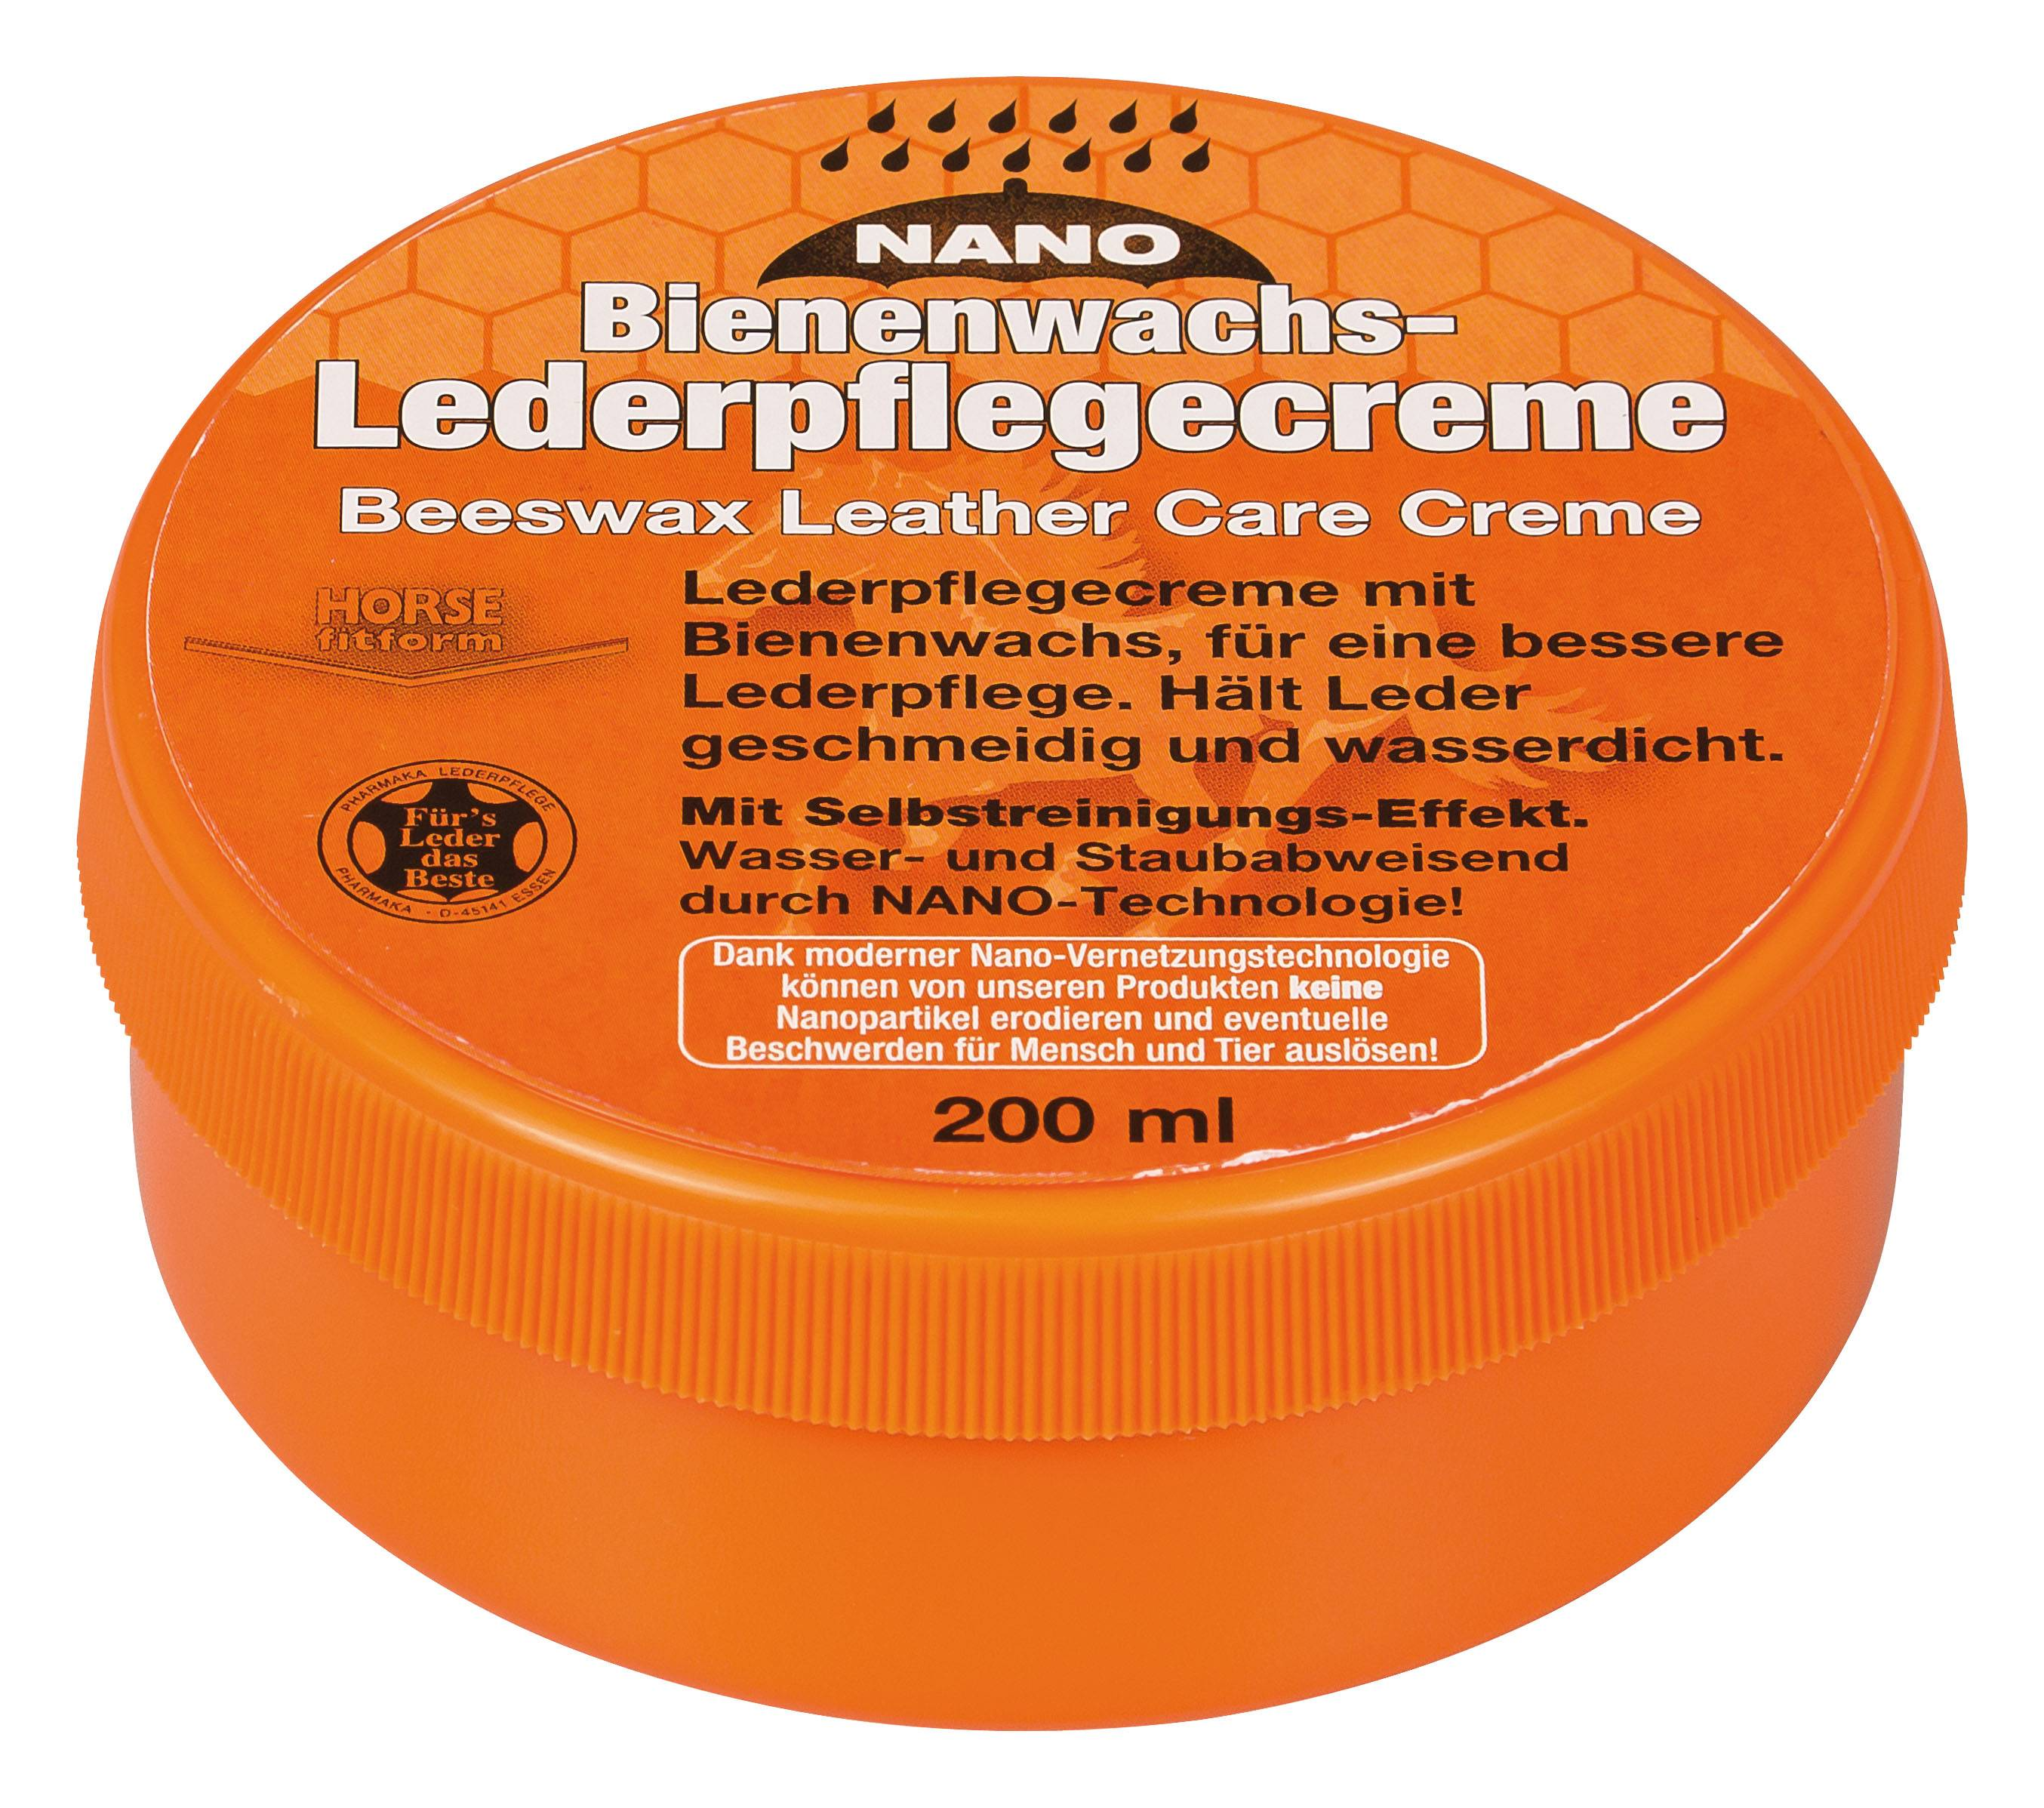 Pharmaka Beinenwachs Leather Creme